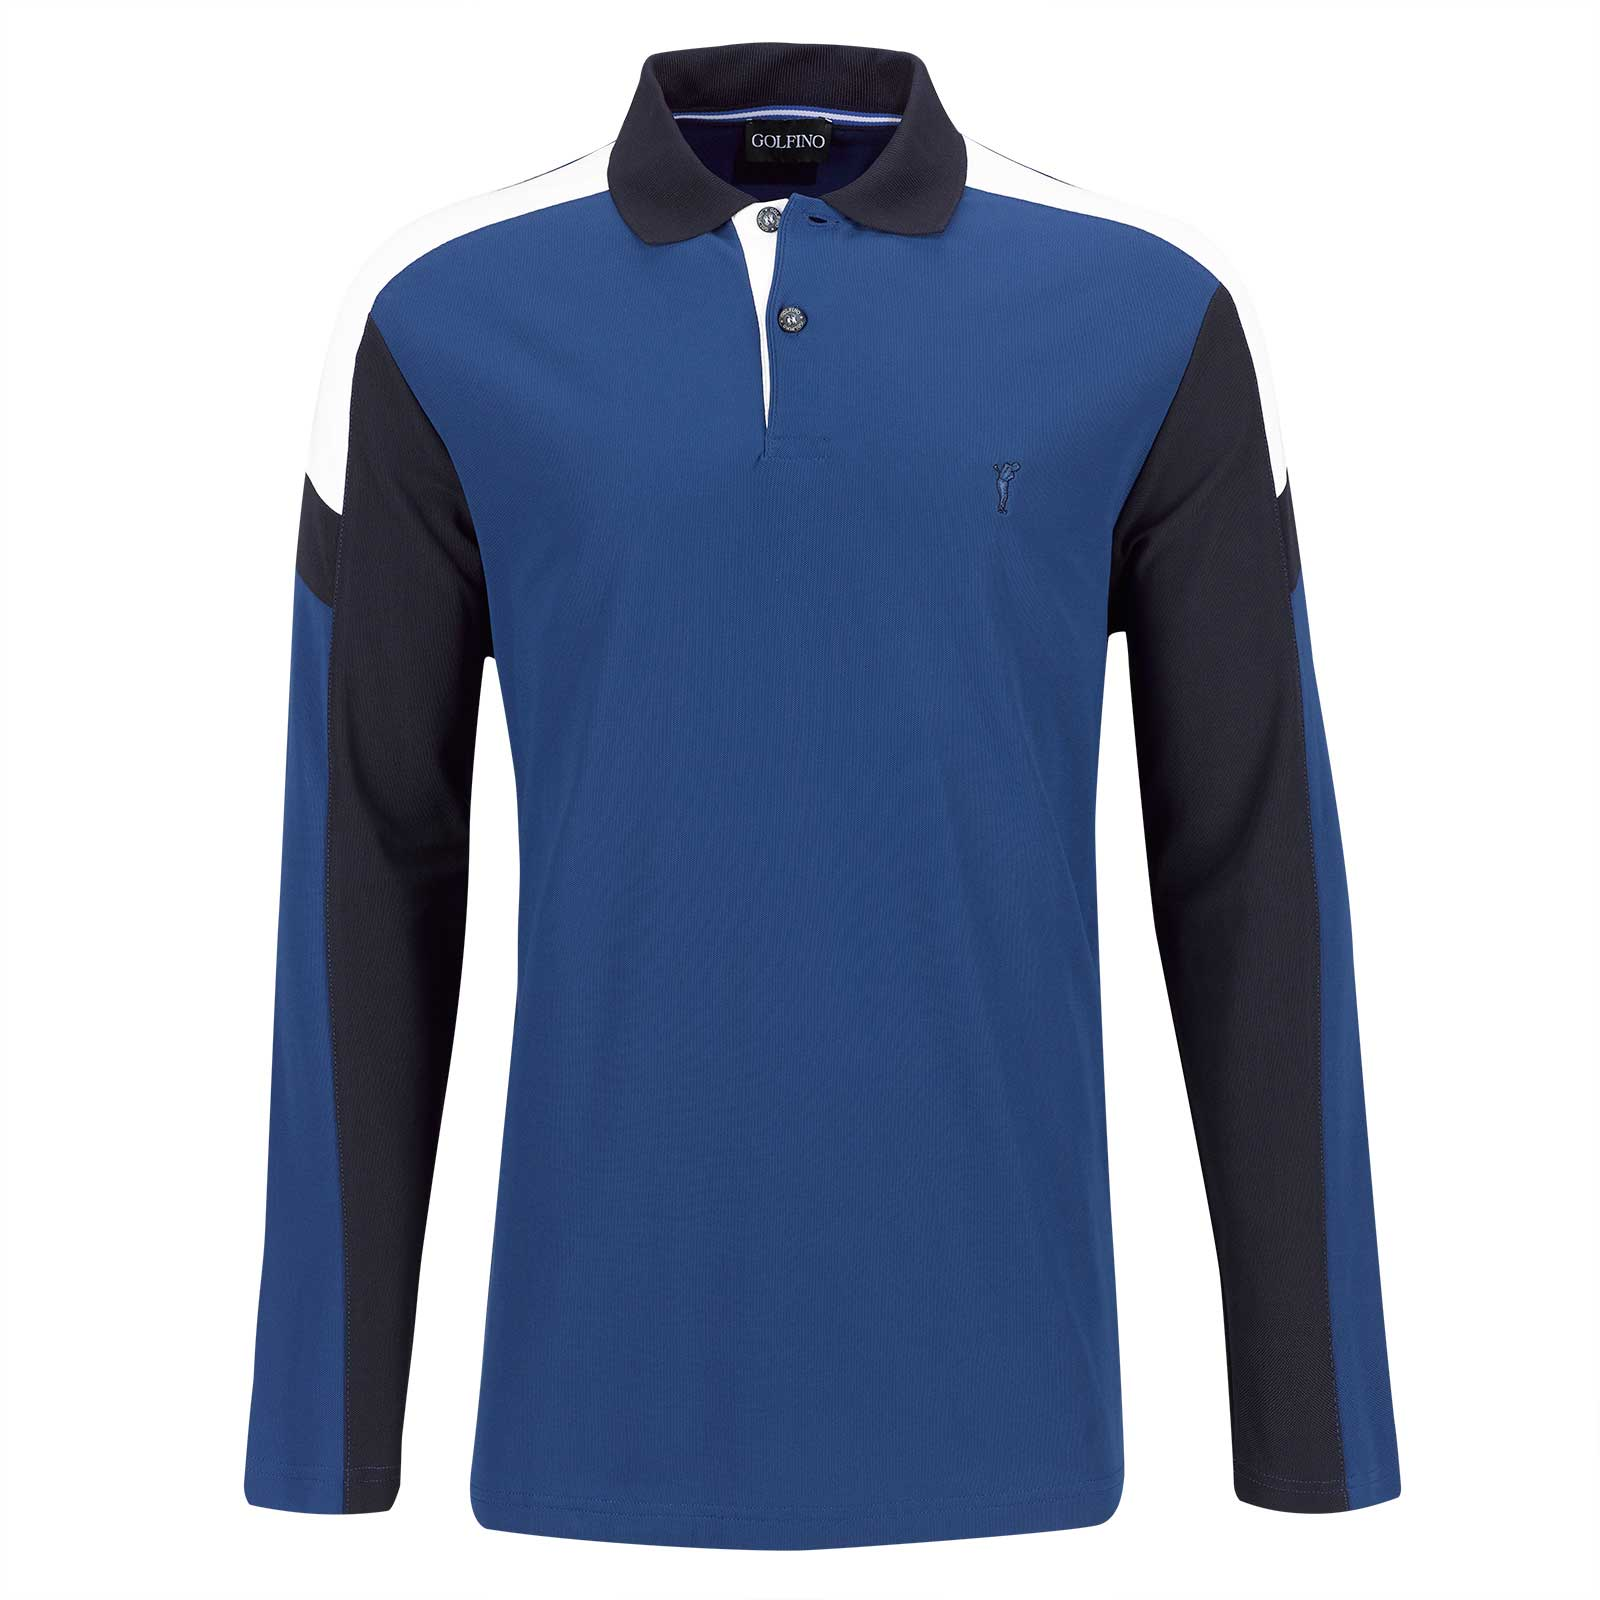 Men's long-sleeve functional golf polo with Moisture Management in pro look